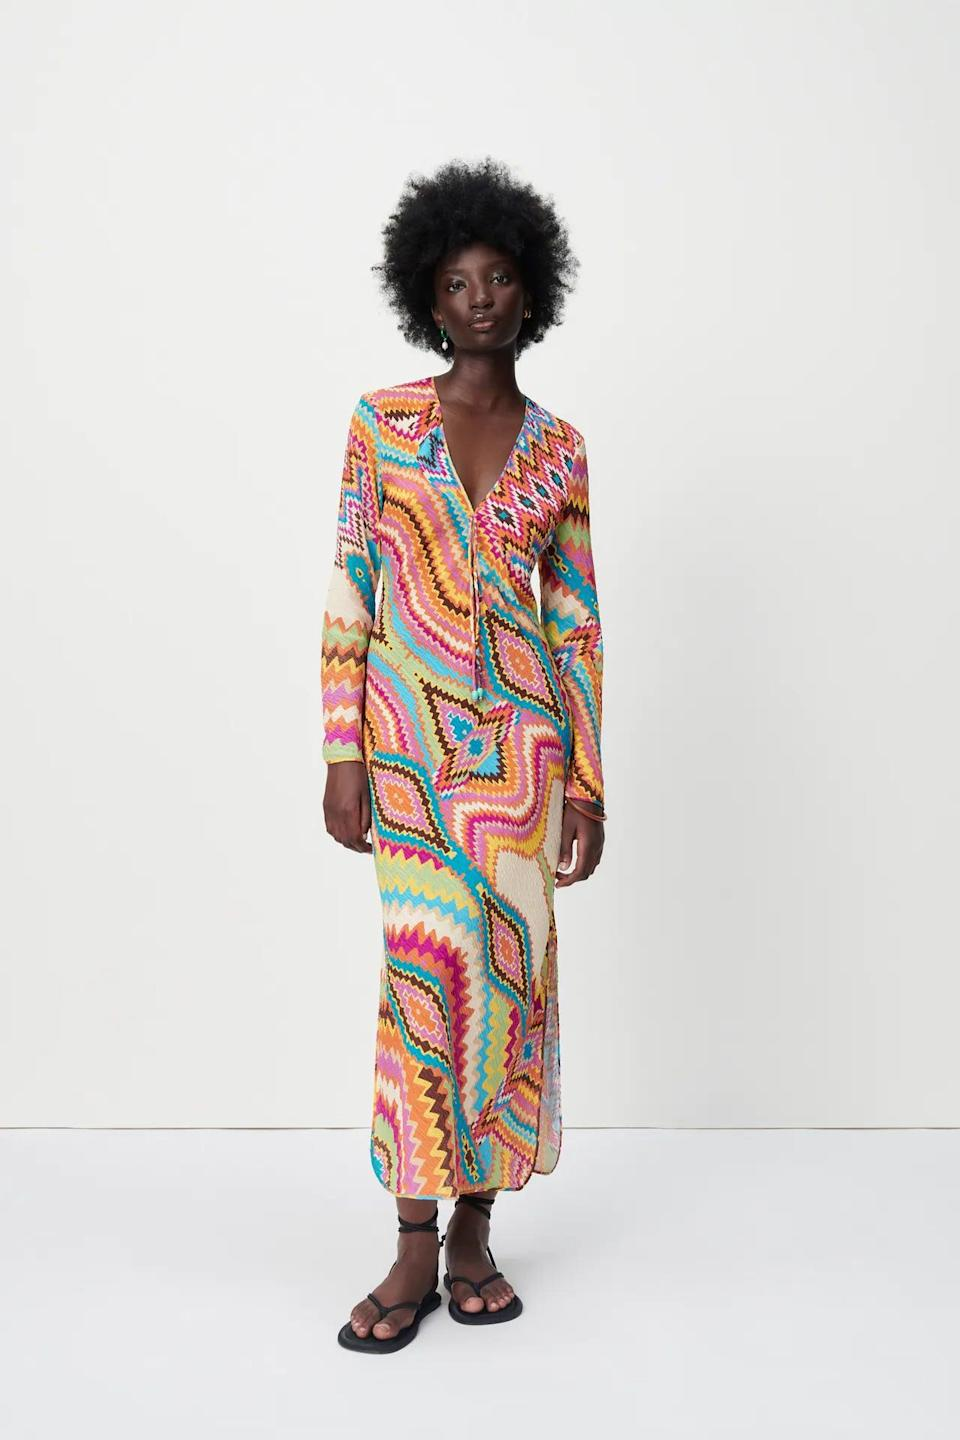 <p>This <span>Zara Long Printed Dress</span> ($70) pairs well with spontaneous weekends in the country or planned beach getaways. The eye-catching print infuses it with cheerful energy, while the silhouette exudes understated elegance.</p>